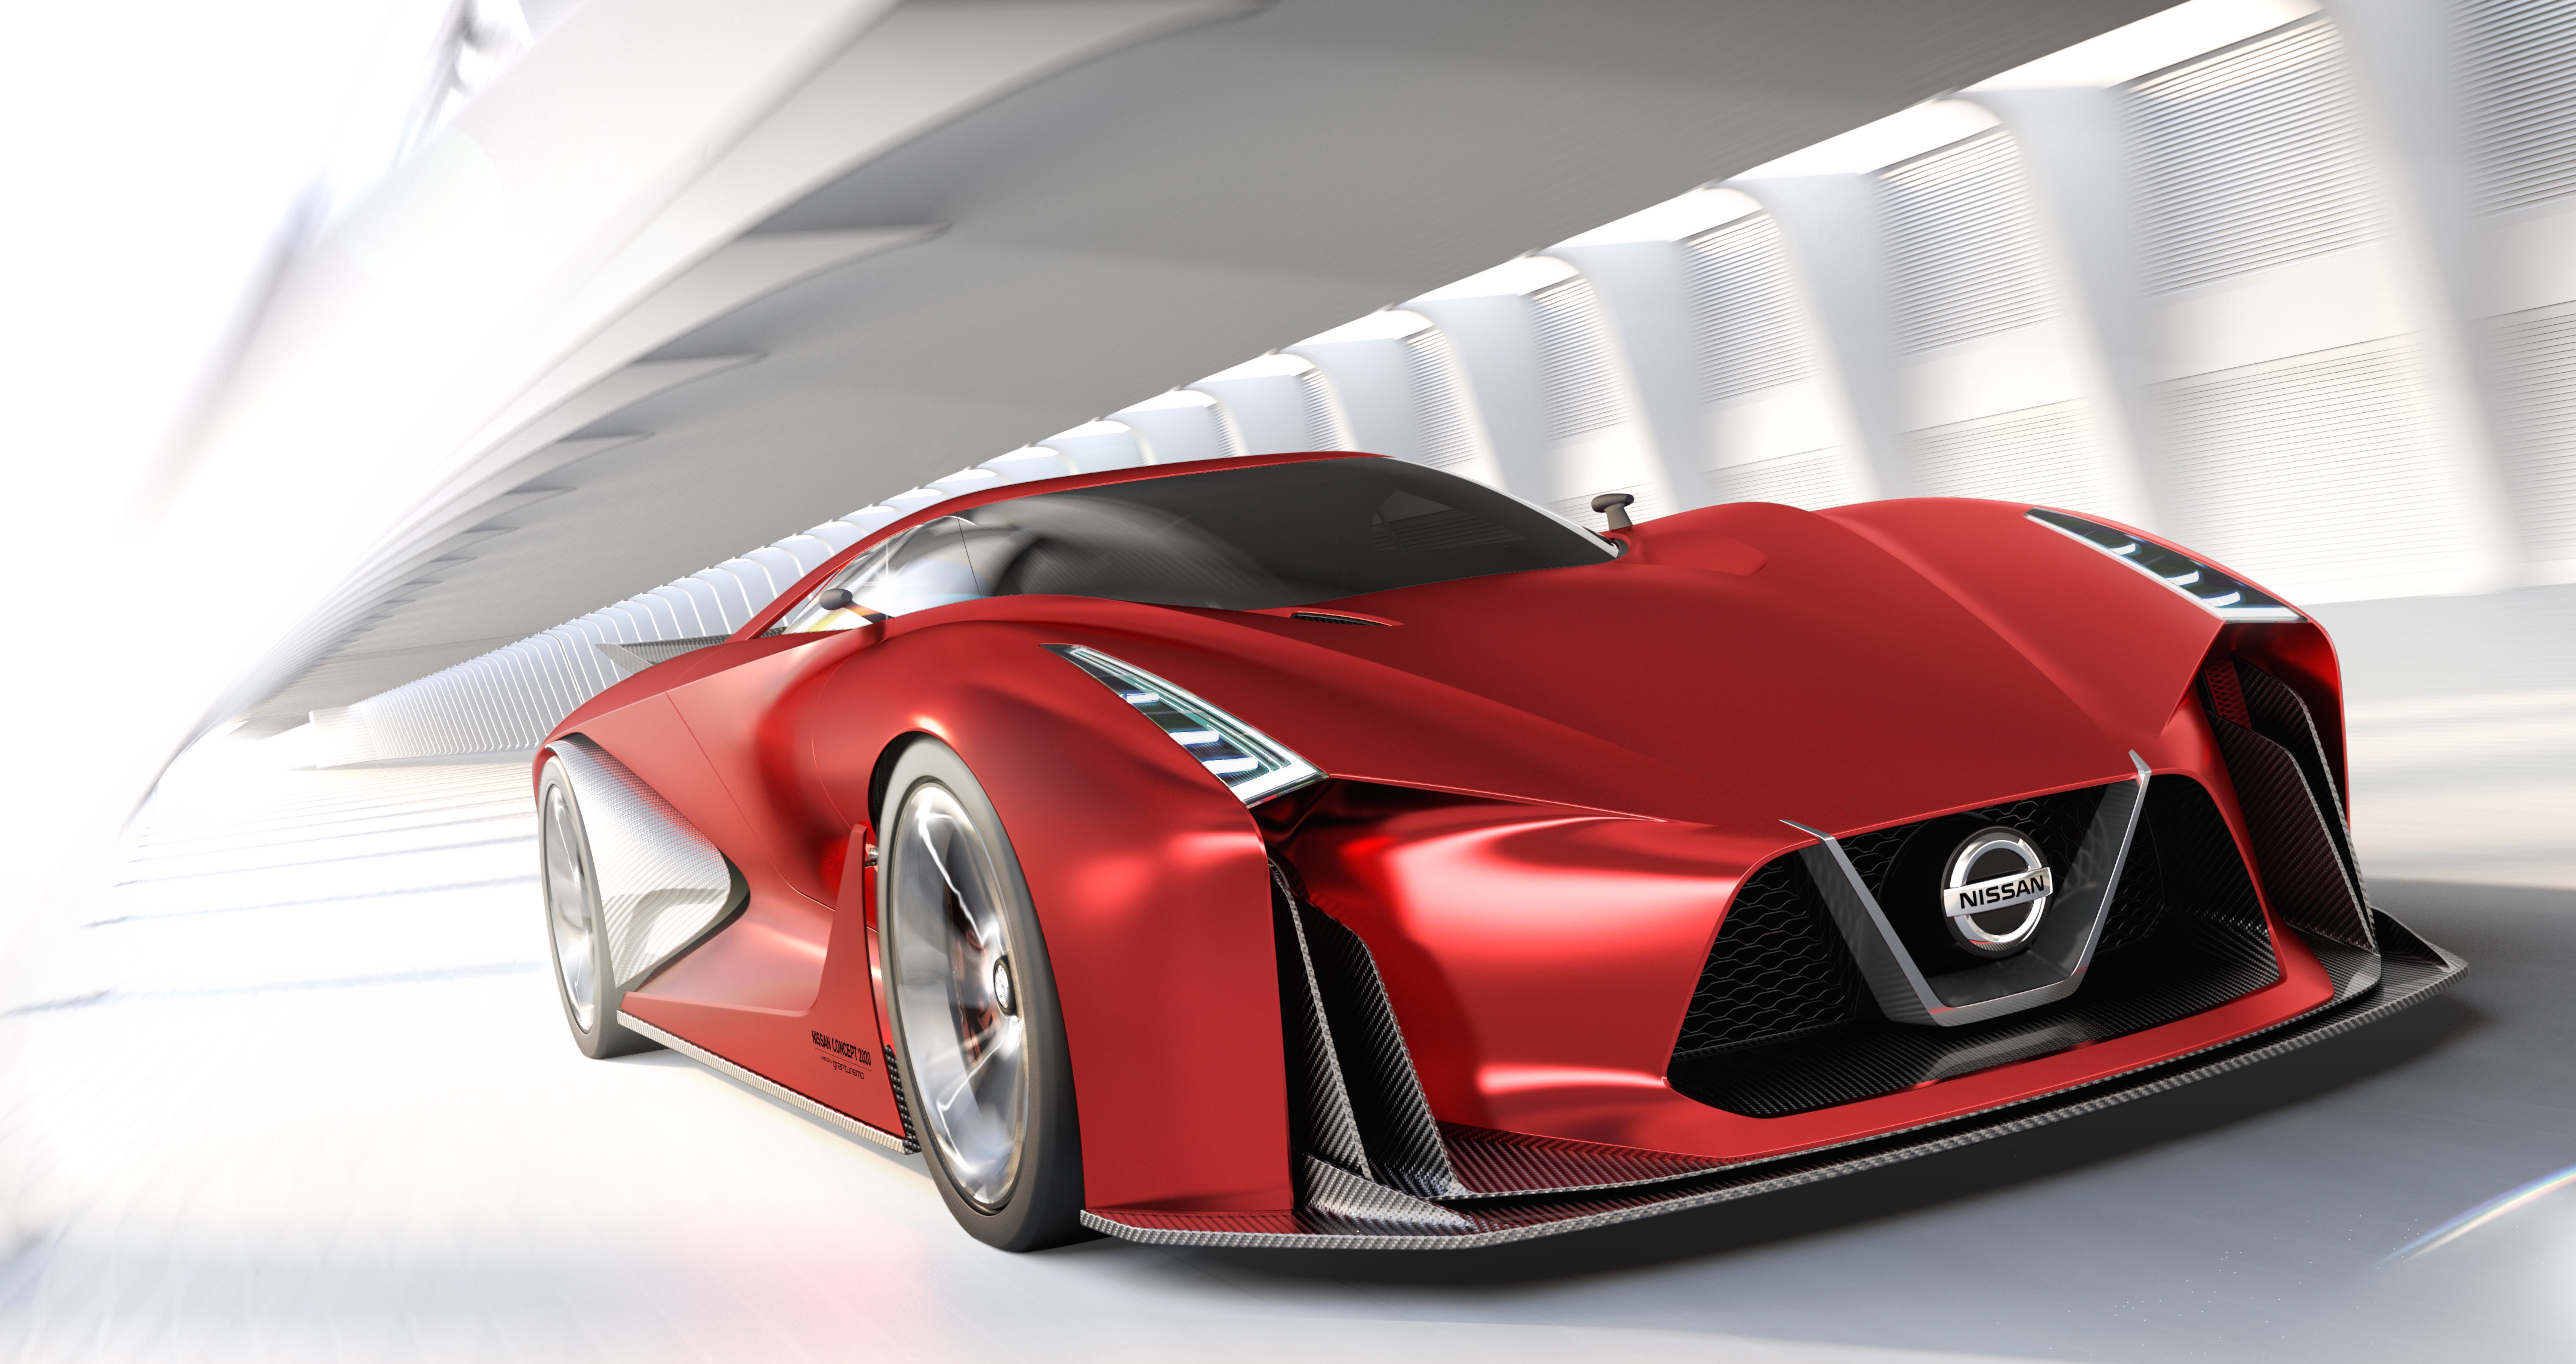 Nissan Concept 2020 Vision Gran Turismo – hot in red Image ...